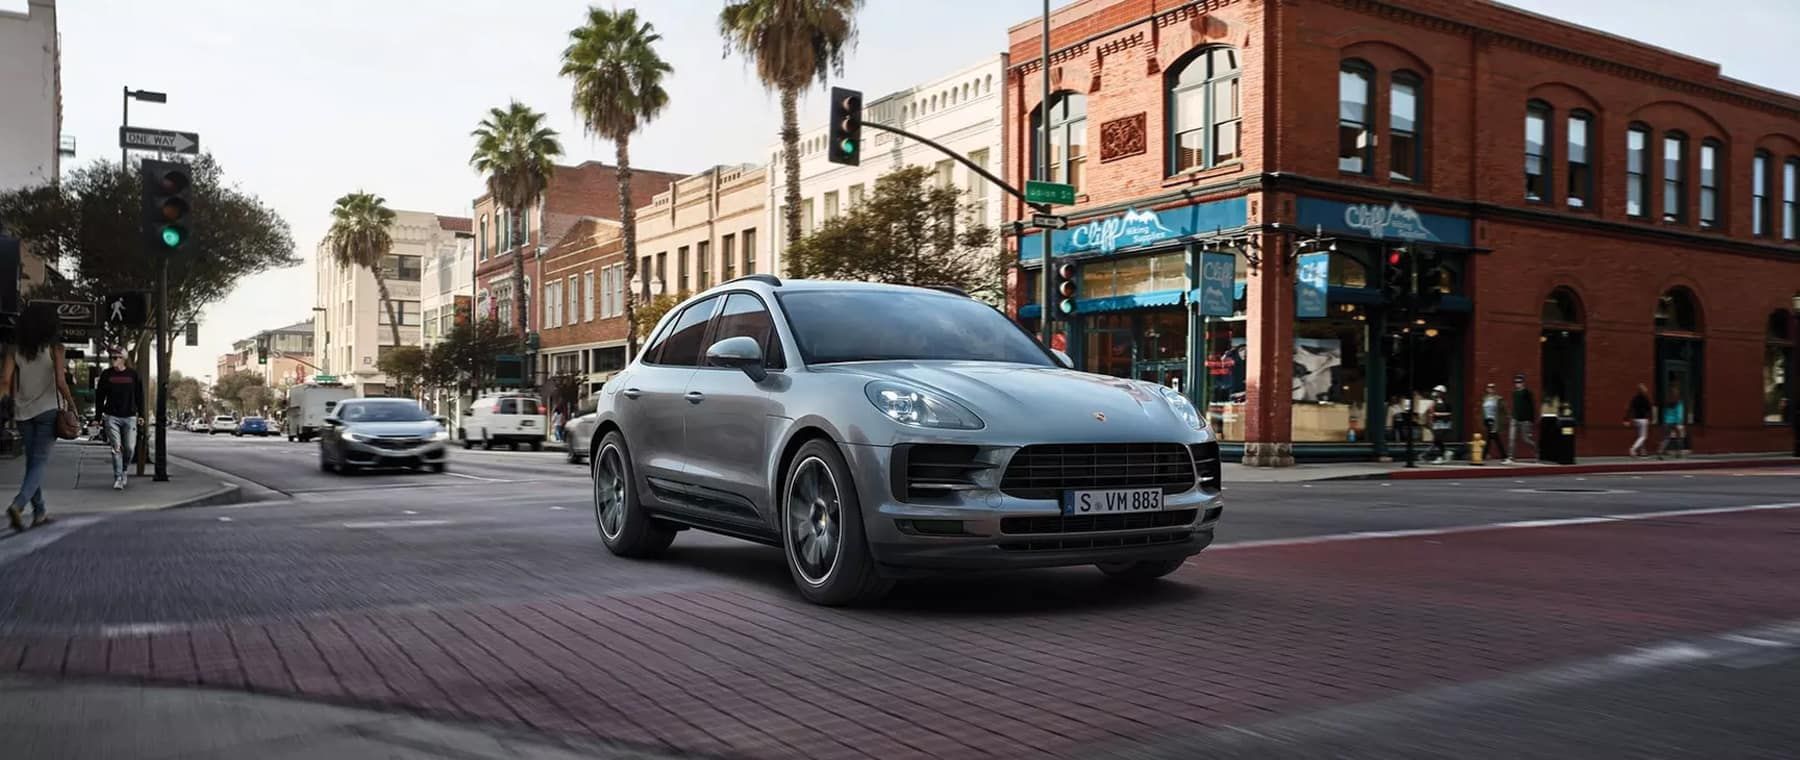 New-Macan-Outdoor-34-Right-Front_1800x760